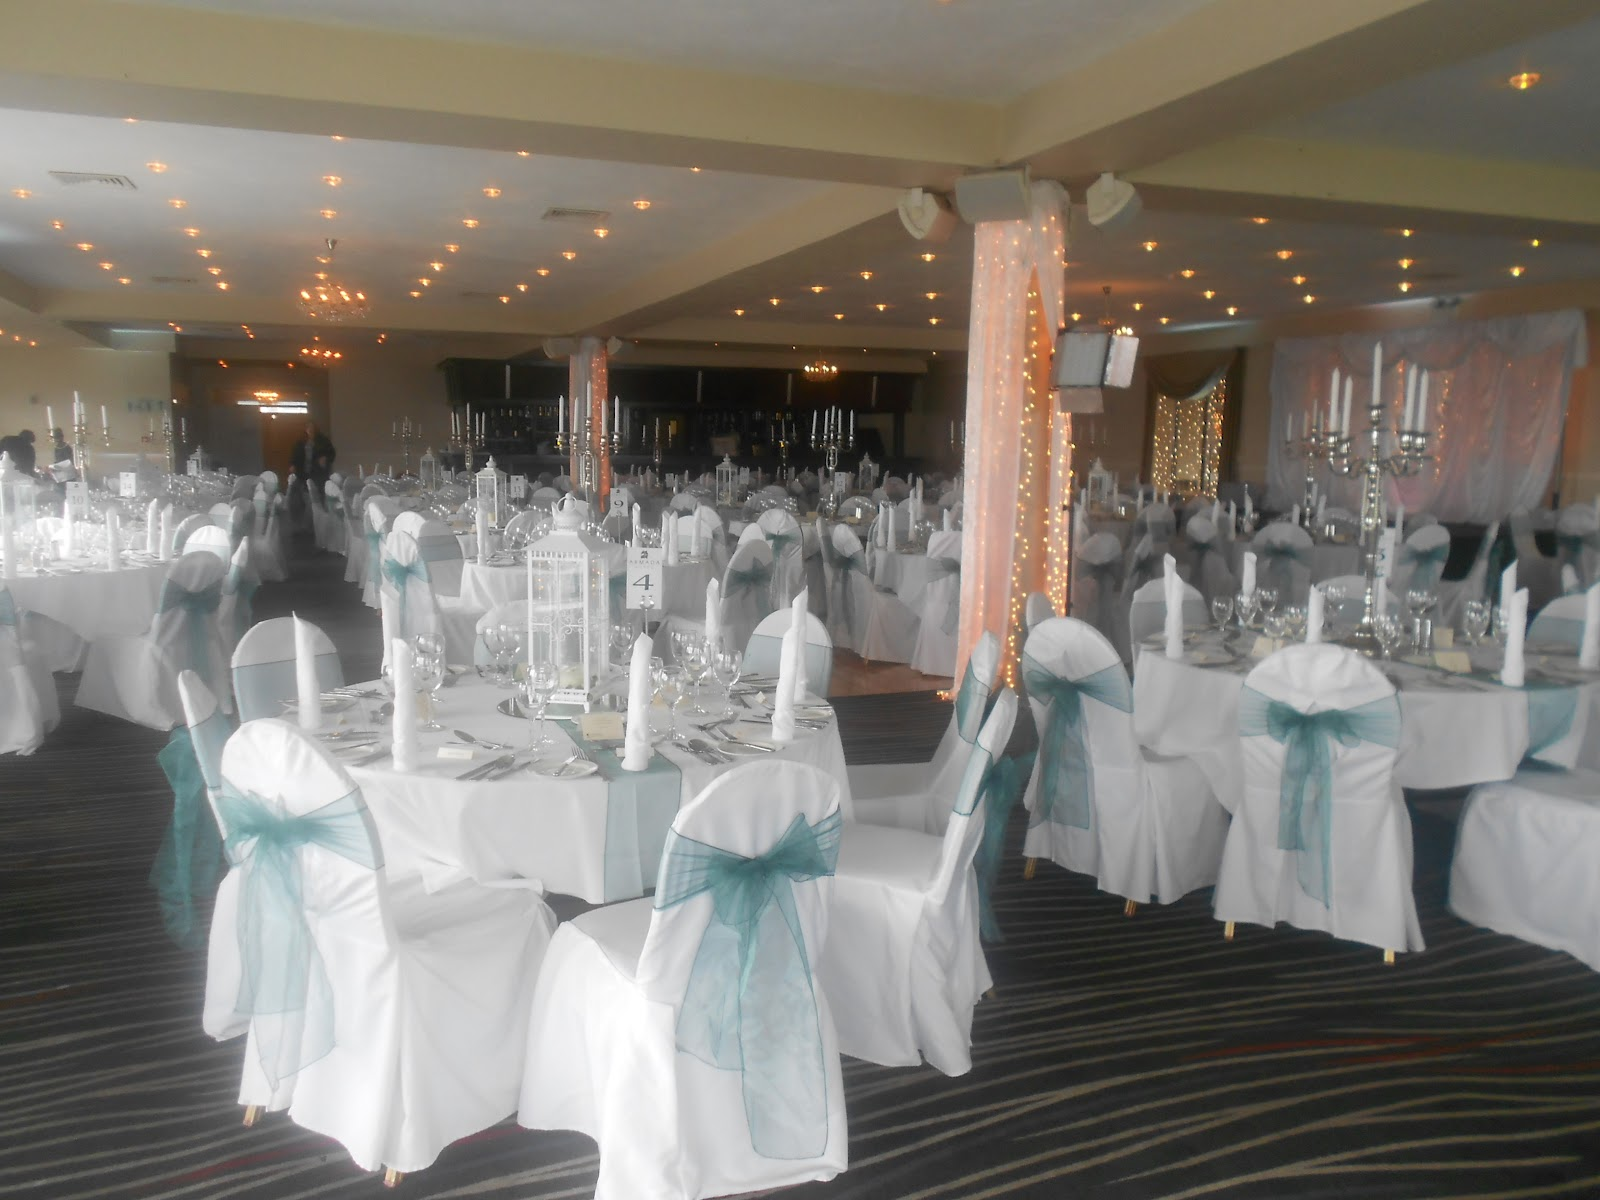 Wedding Chair Covers Galway Toddler Leather Recliner Mac's Flowers, The Flower Specialist, County Clare: Cover Packages